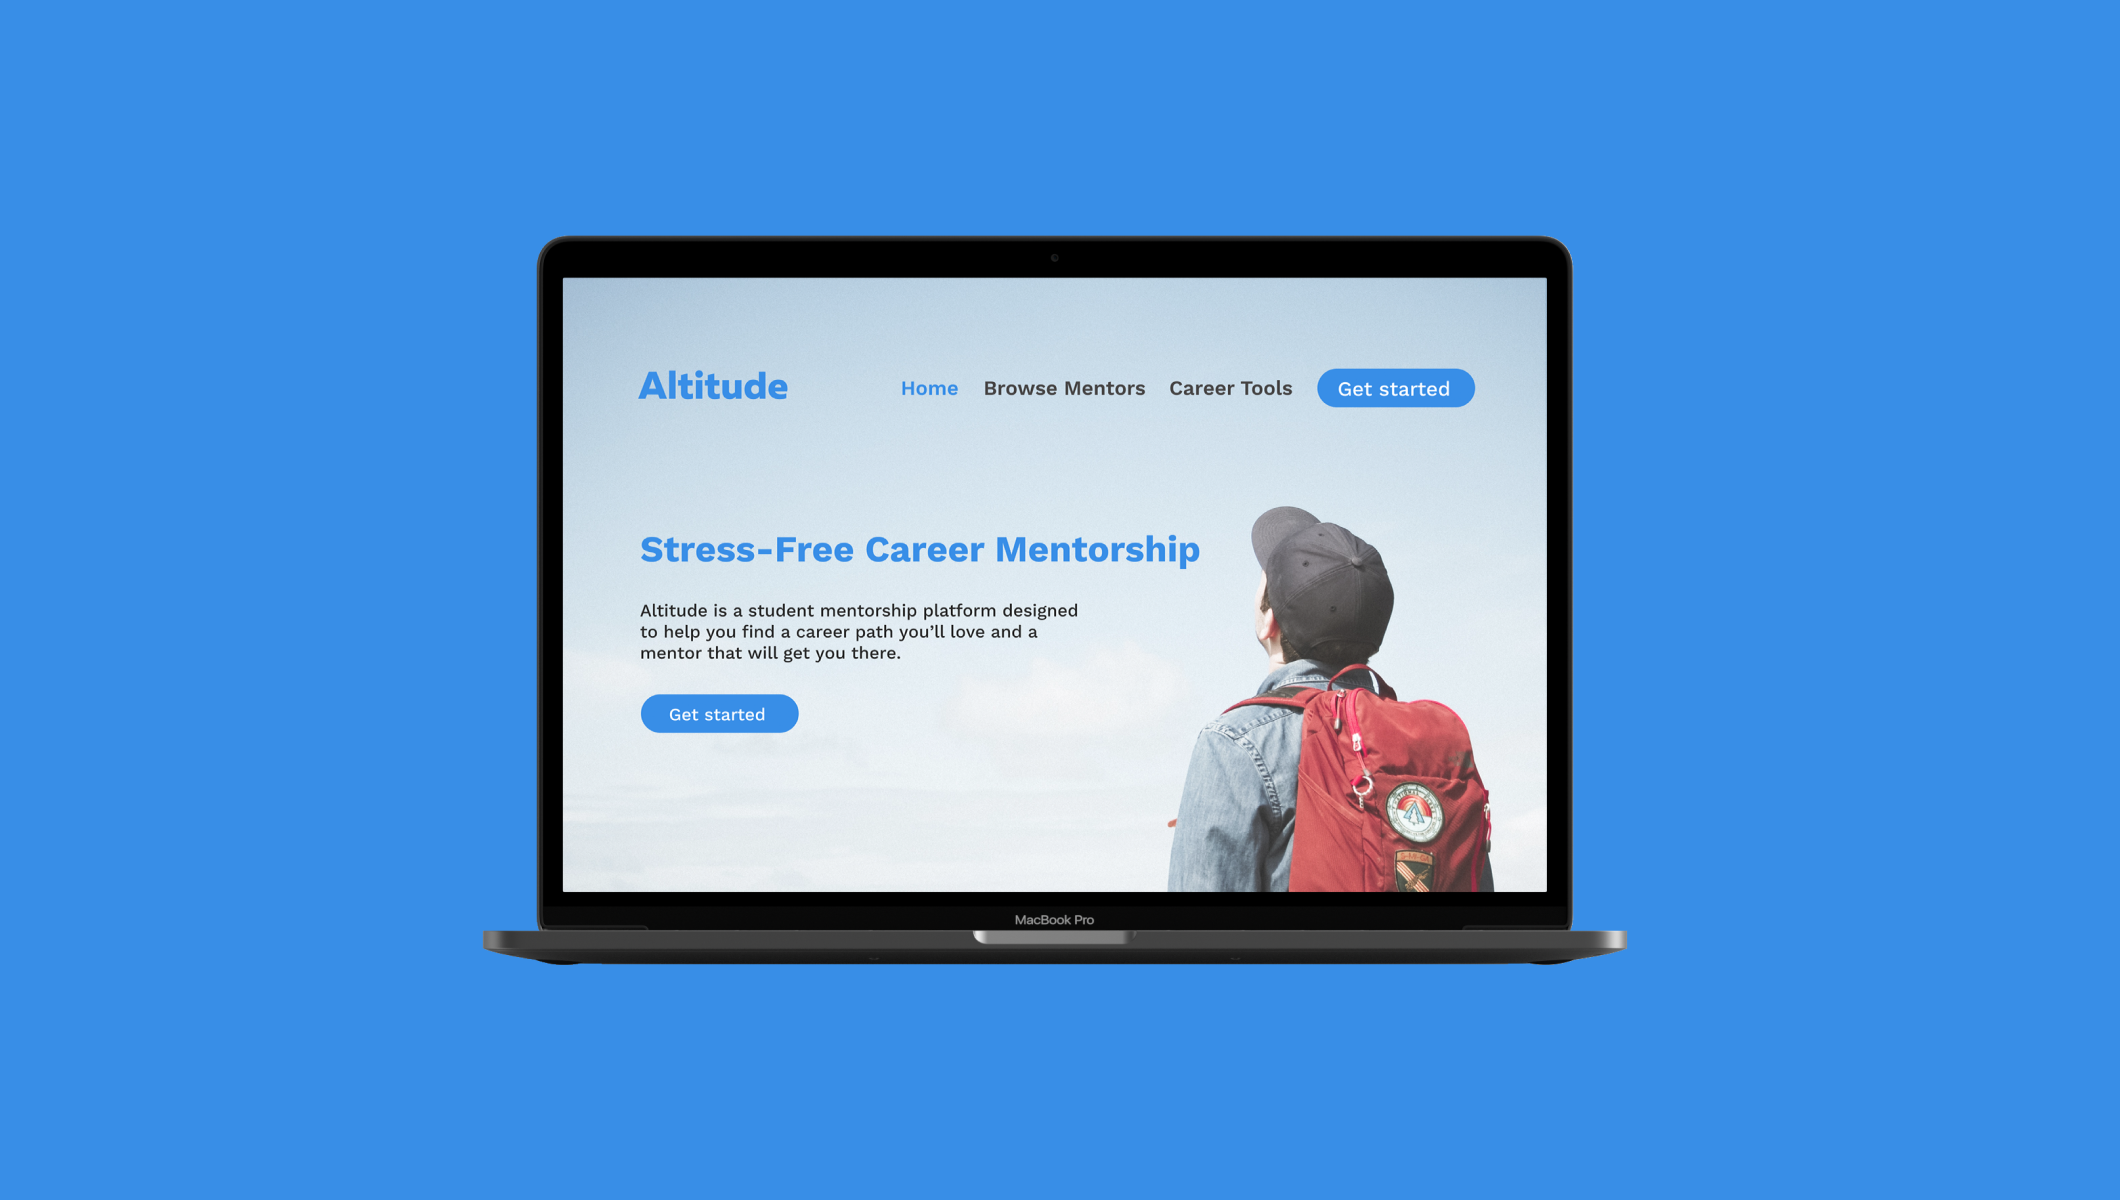 Mockup of the homepage for Altitude